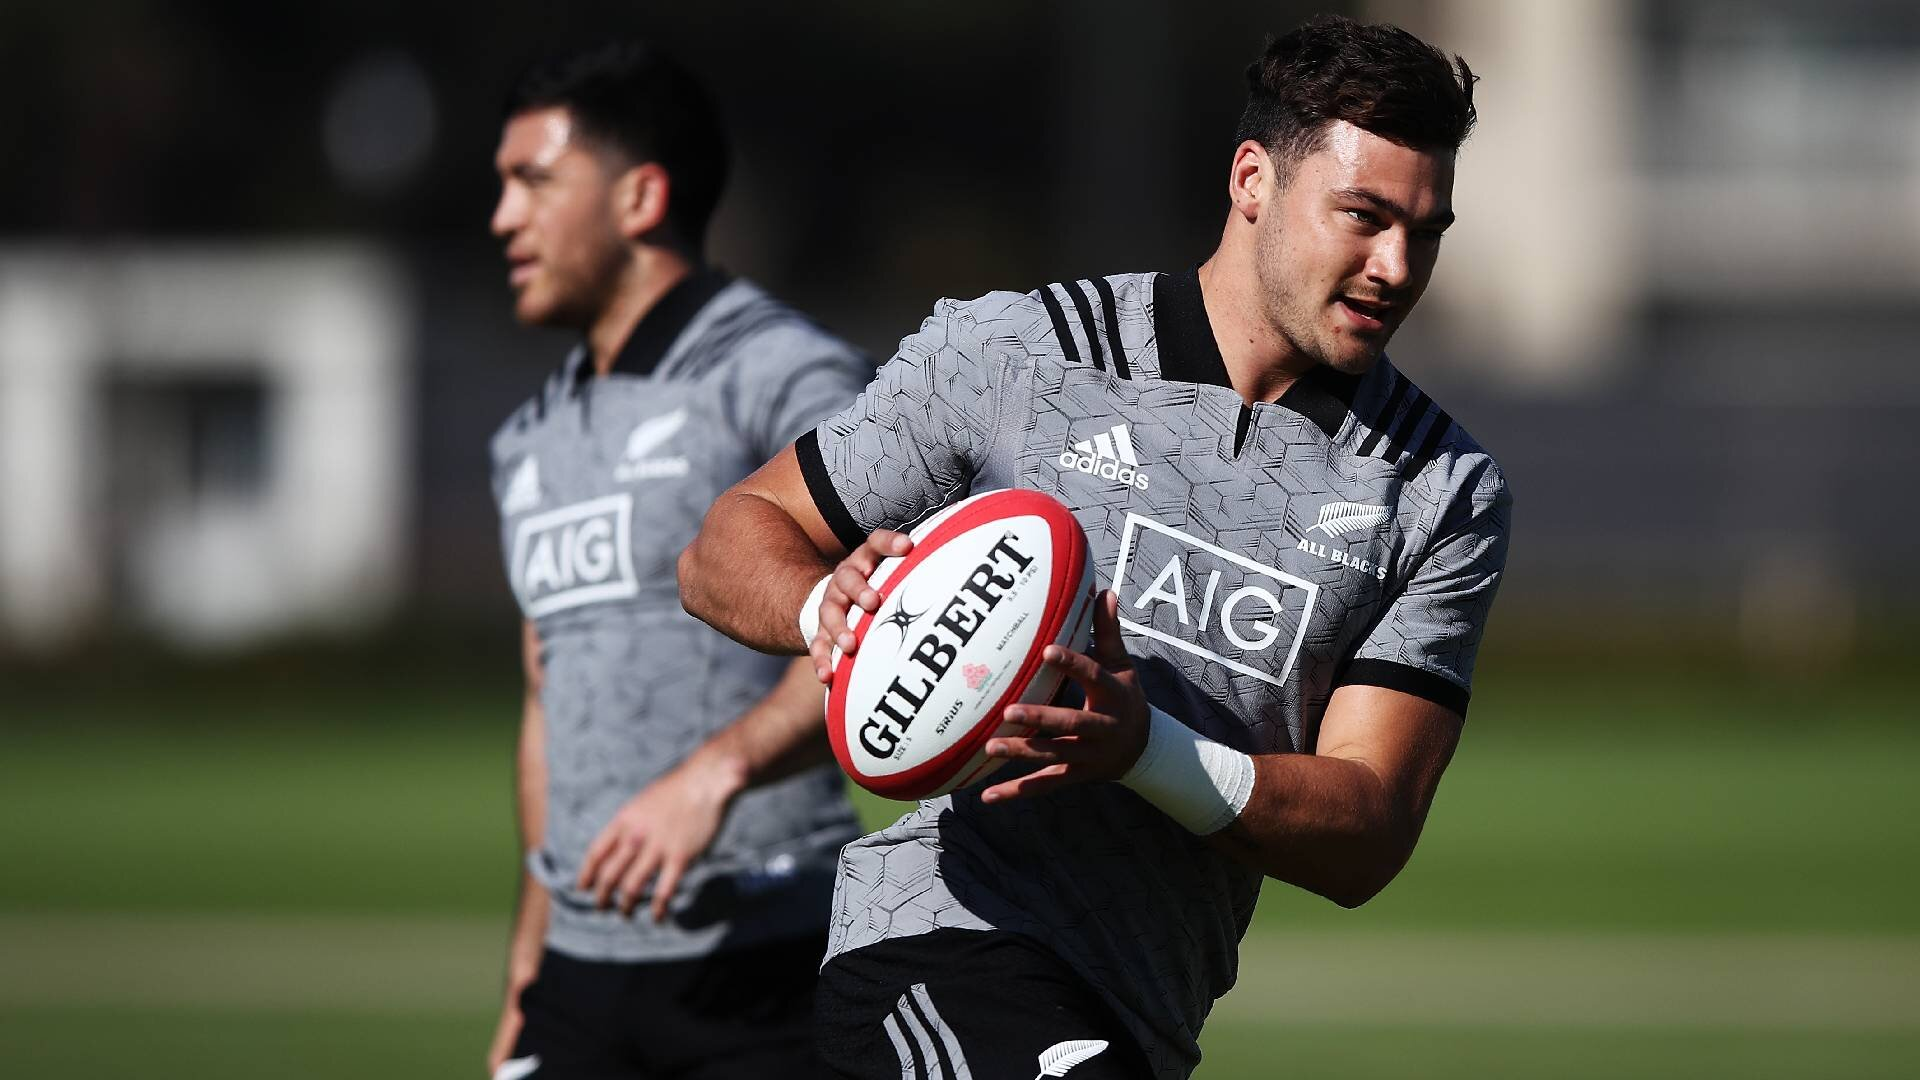 'I lost nine kgs': All Blacks star opens up about health scare